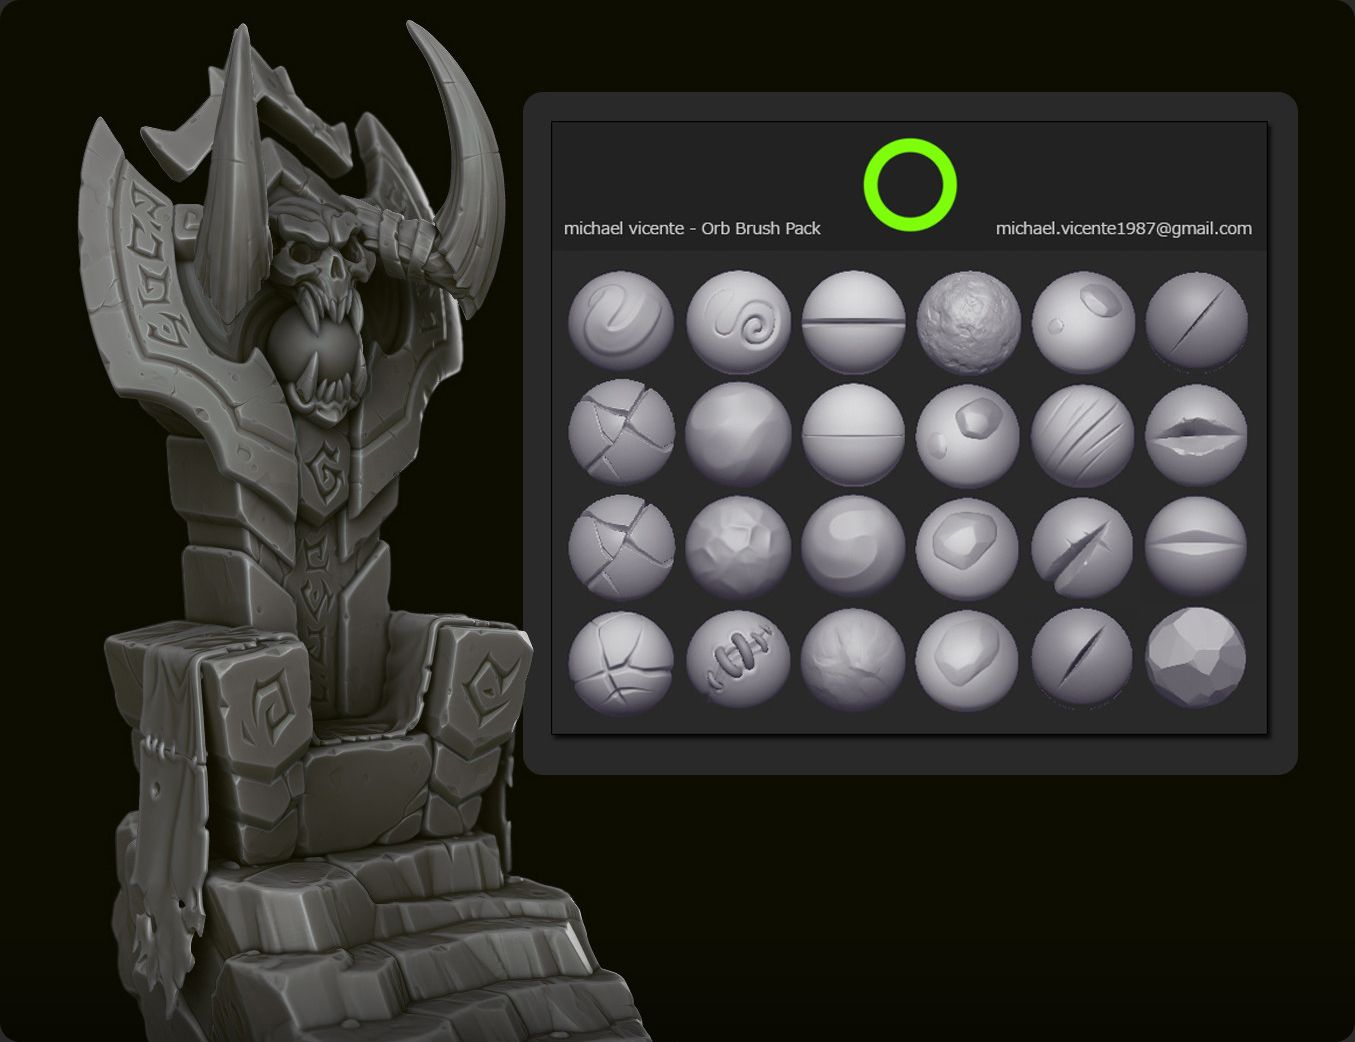 Free Brush pack & pdf on Bevel tips from Michael Vicente